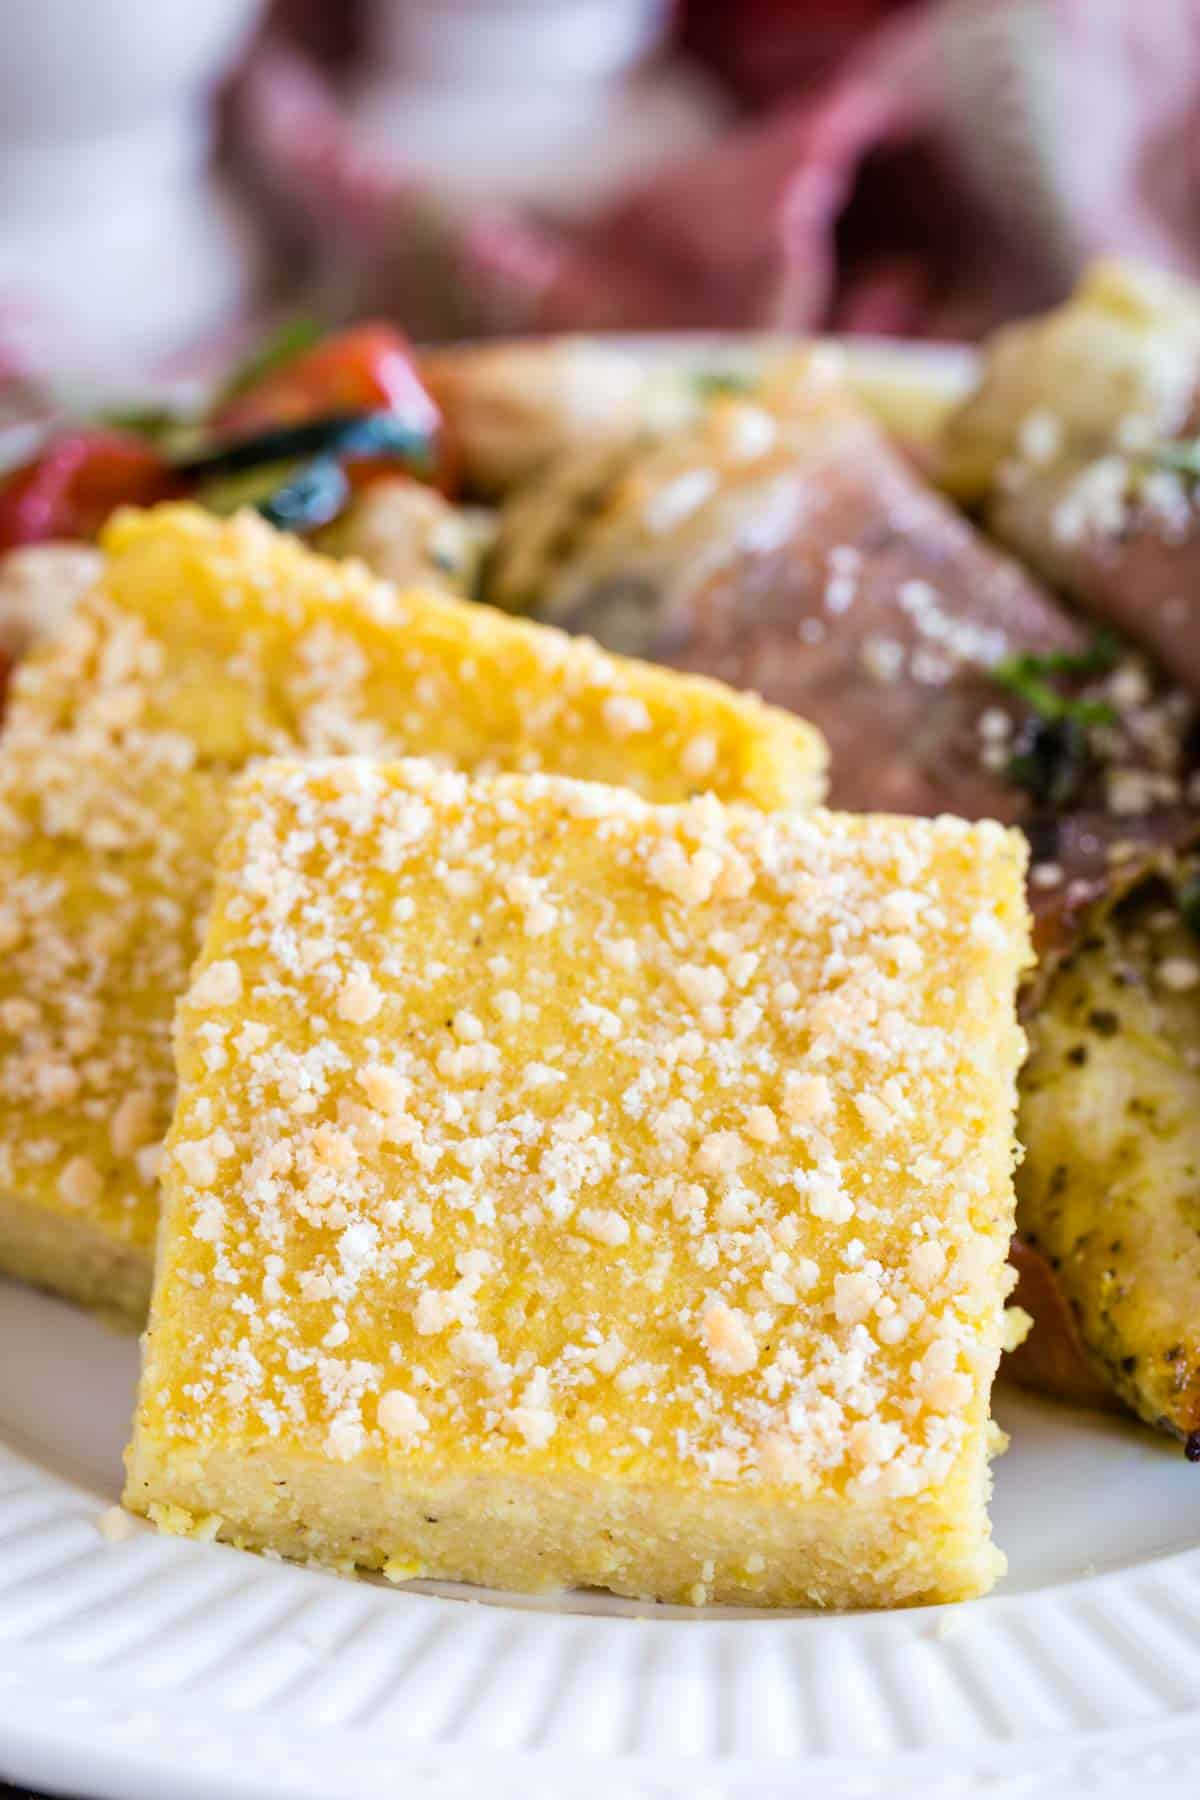 square of polenta with parmesan on top on a white diner plate